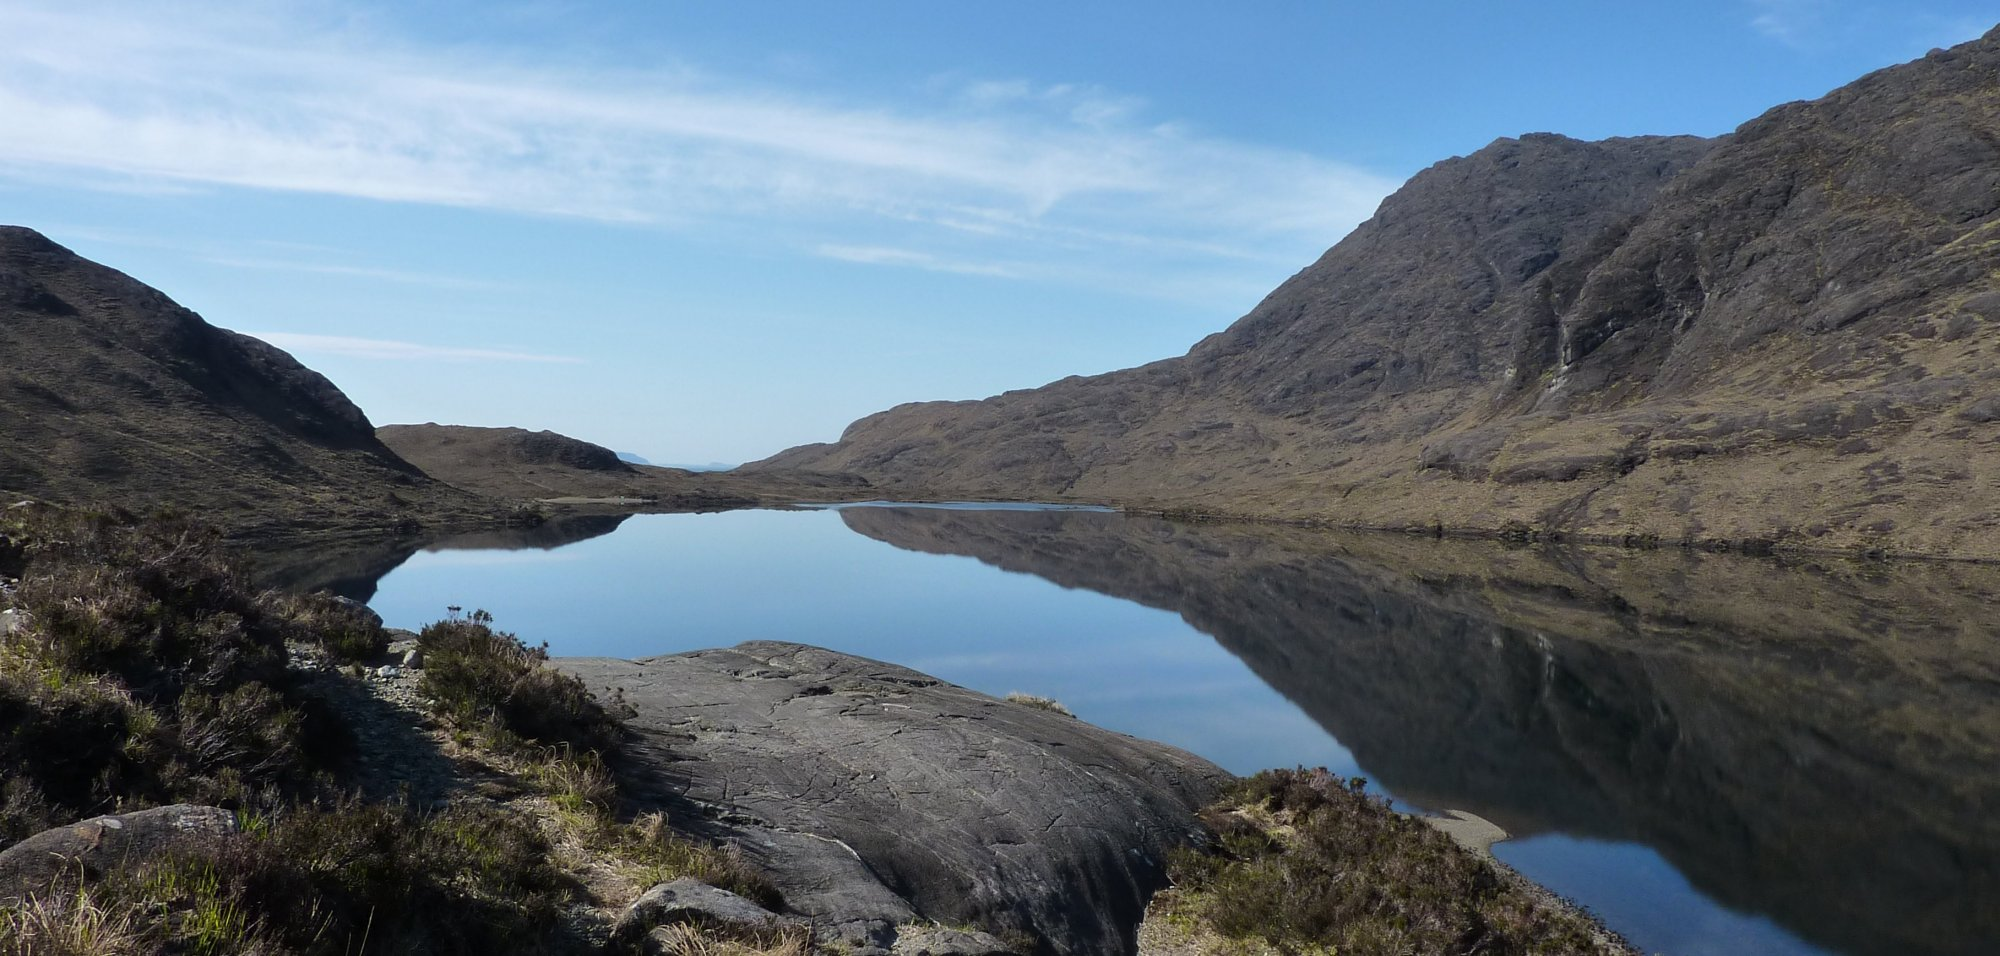 Loch na Creitheach, perfectly still in the morning air - a huge mirror